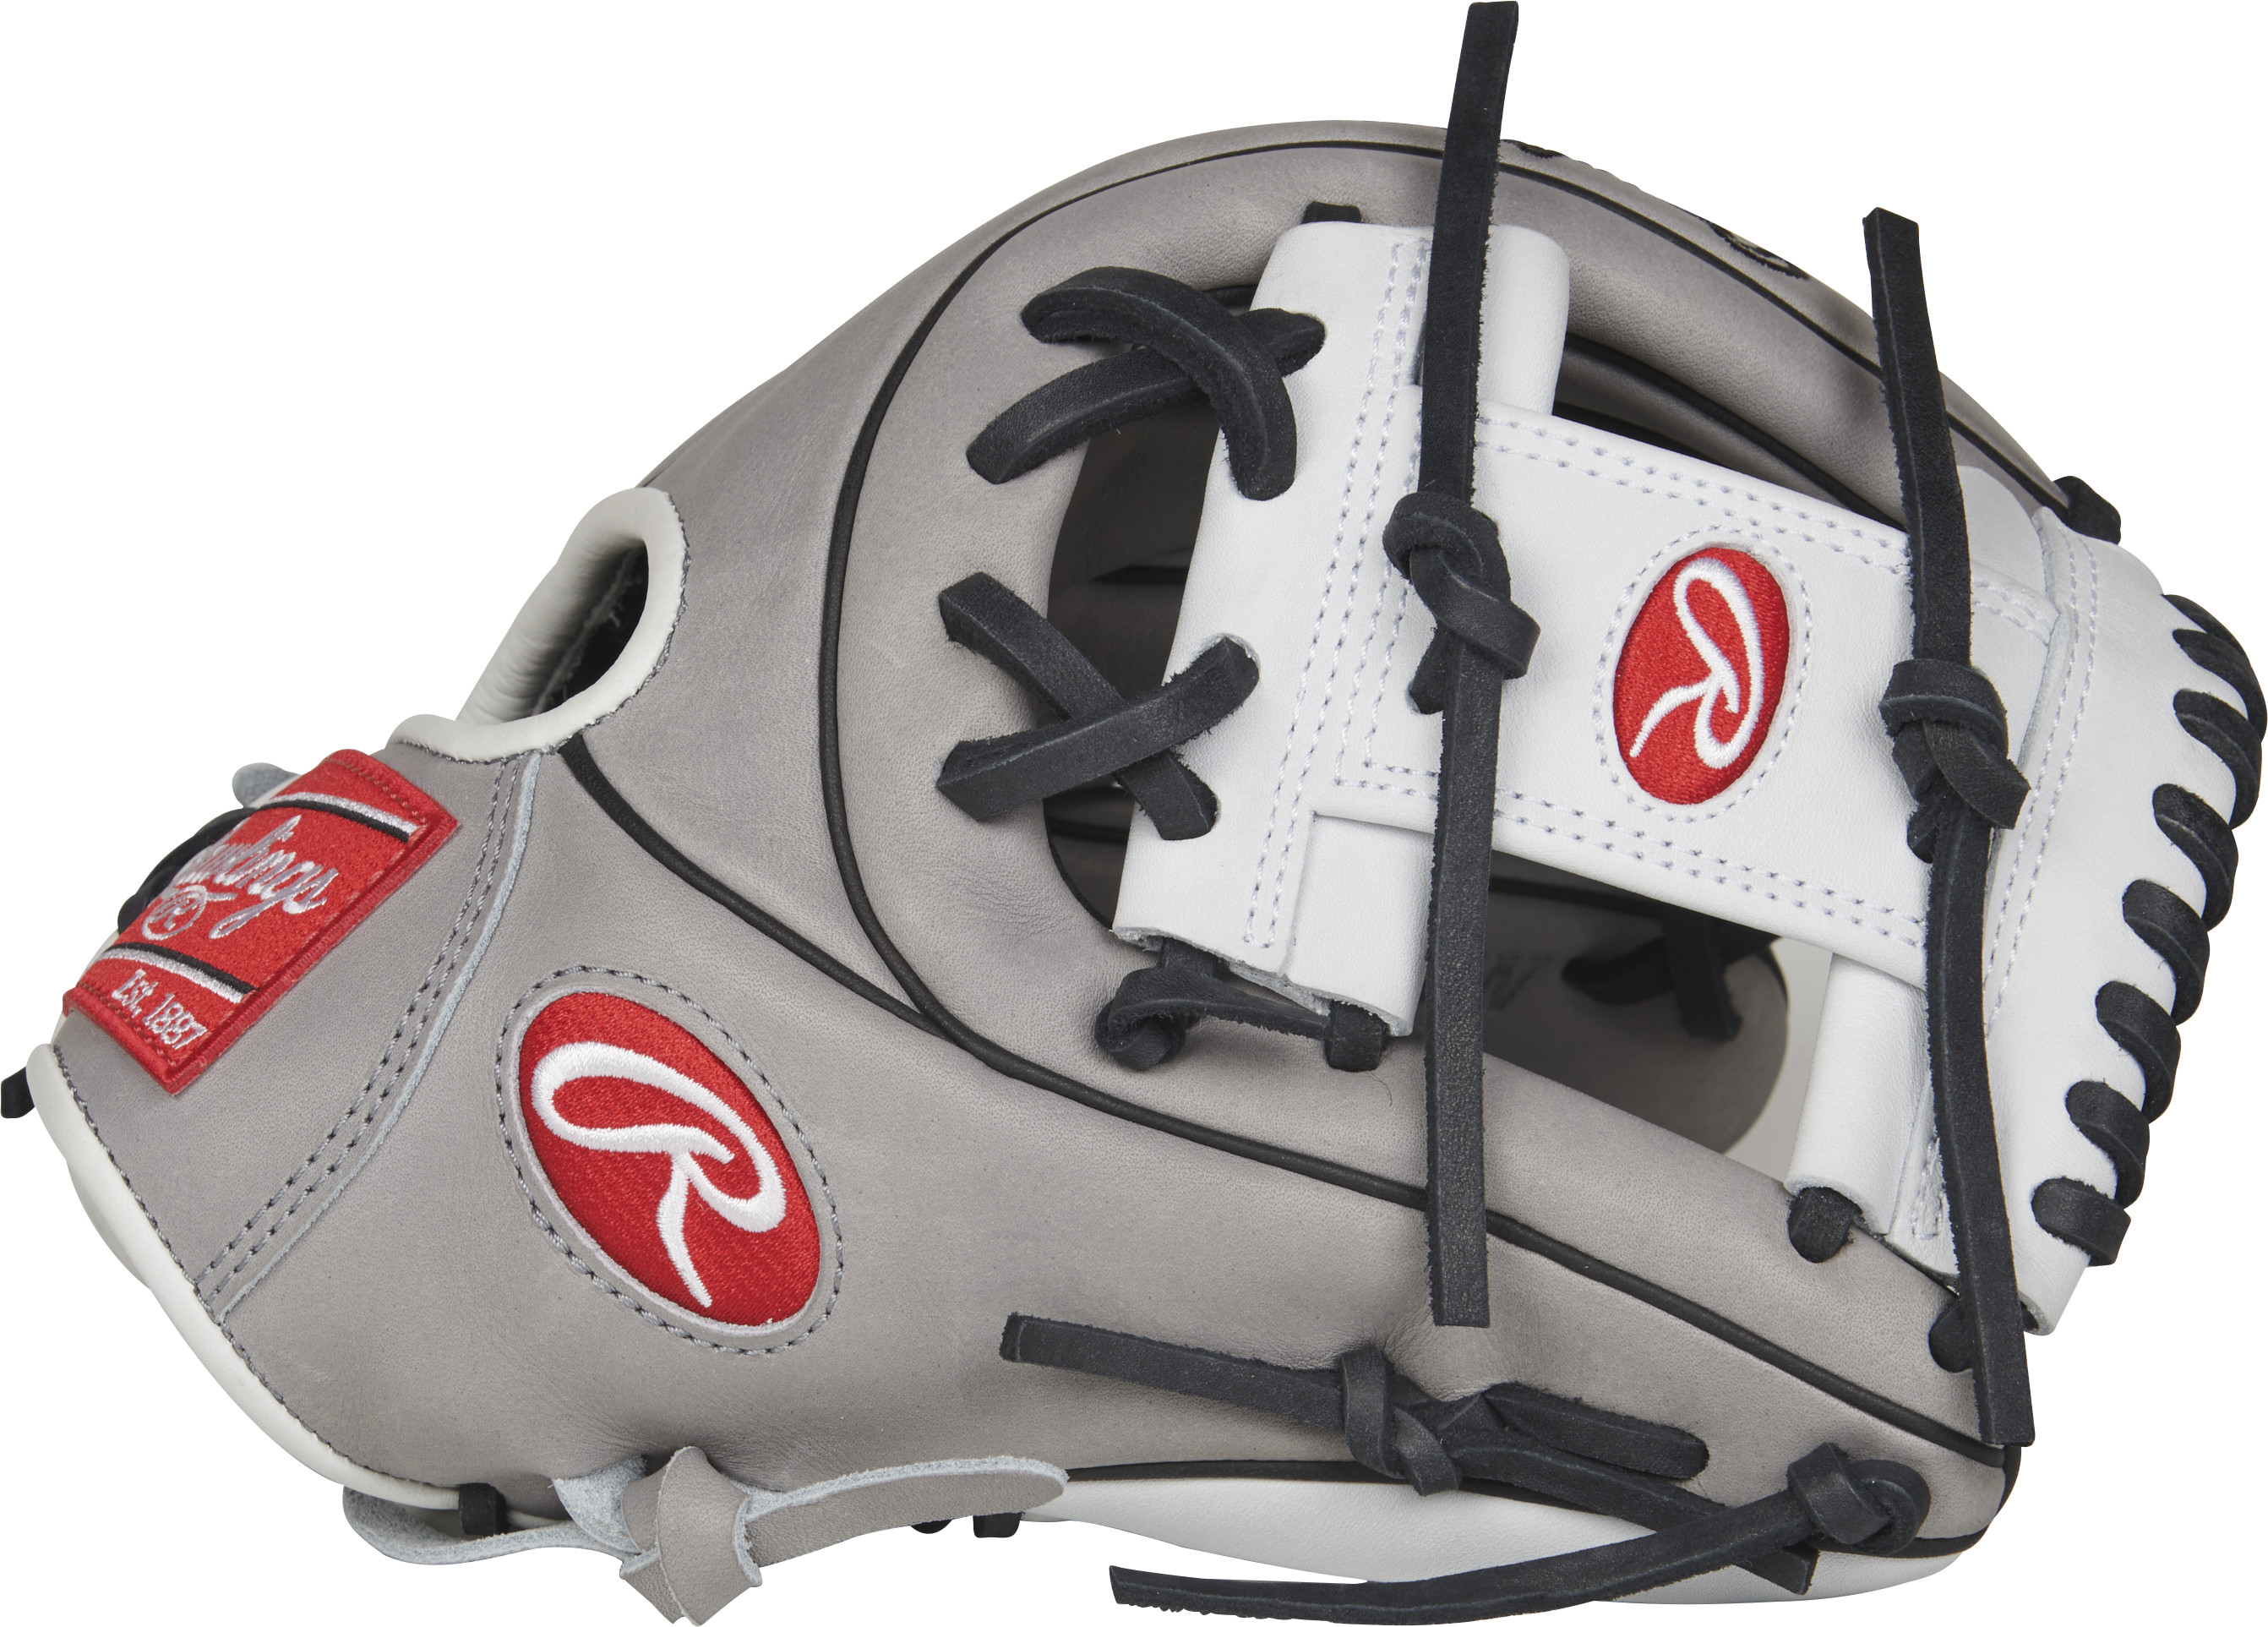 http://www.bestbatdeals.com/images/gloves/rawlings/PRO715SB-2GW-3.jpg